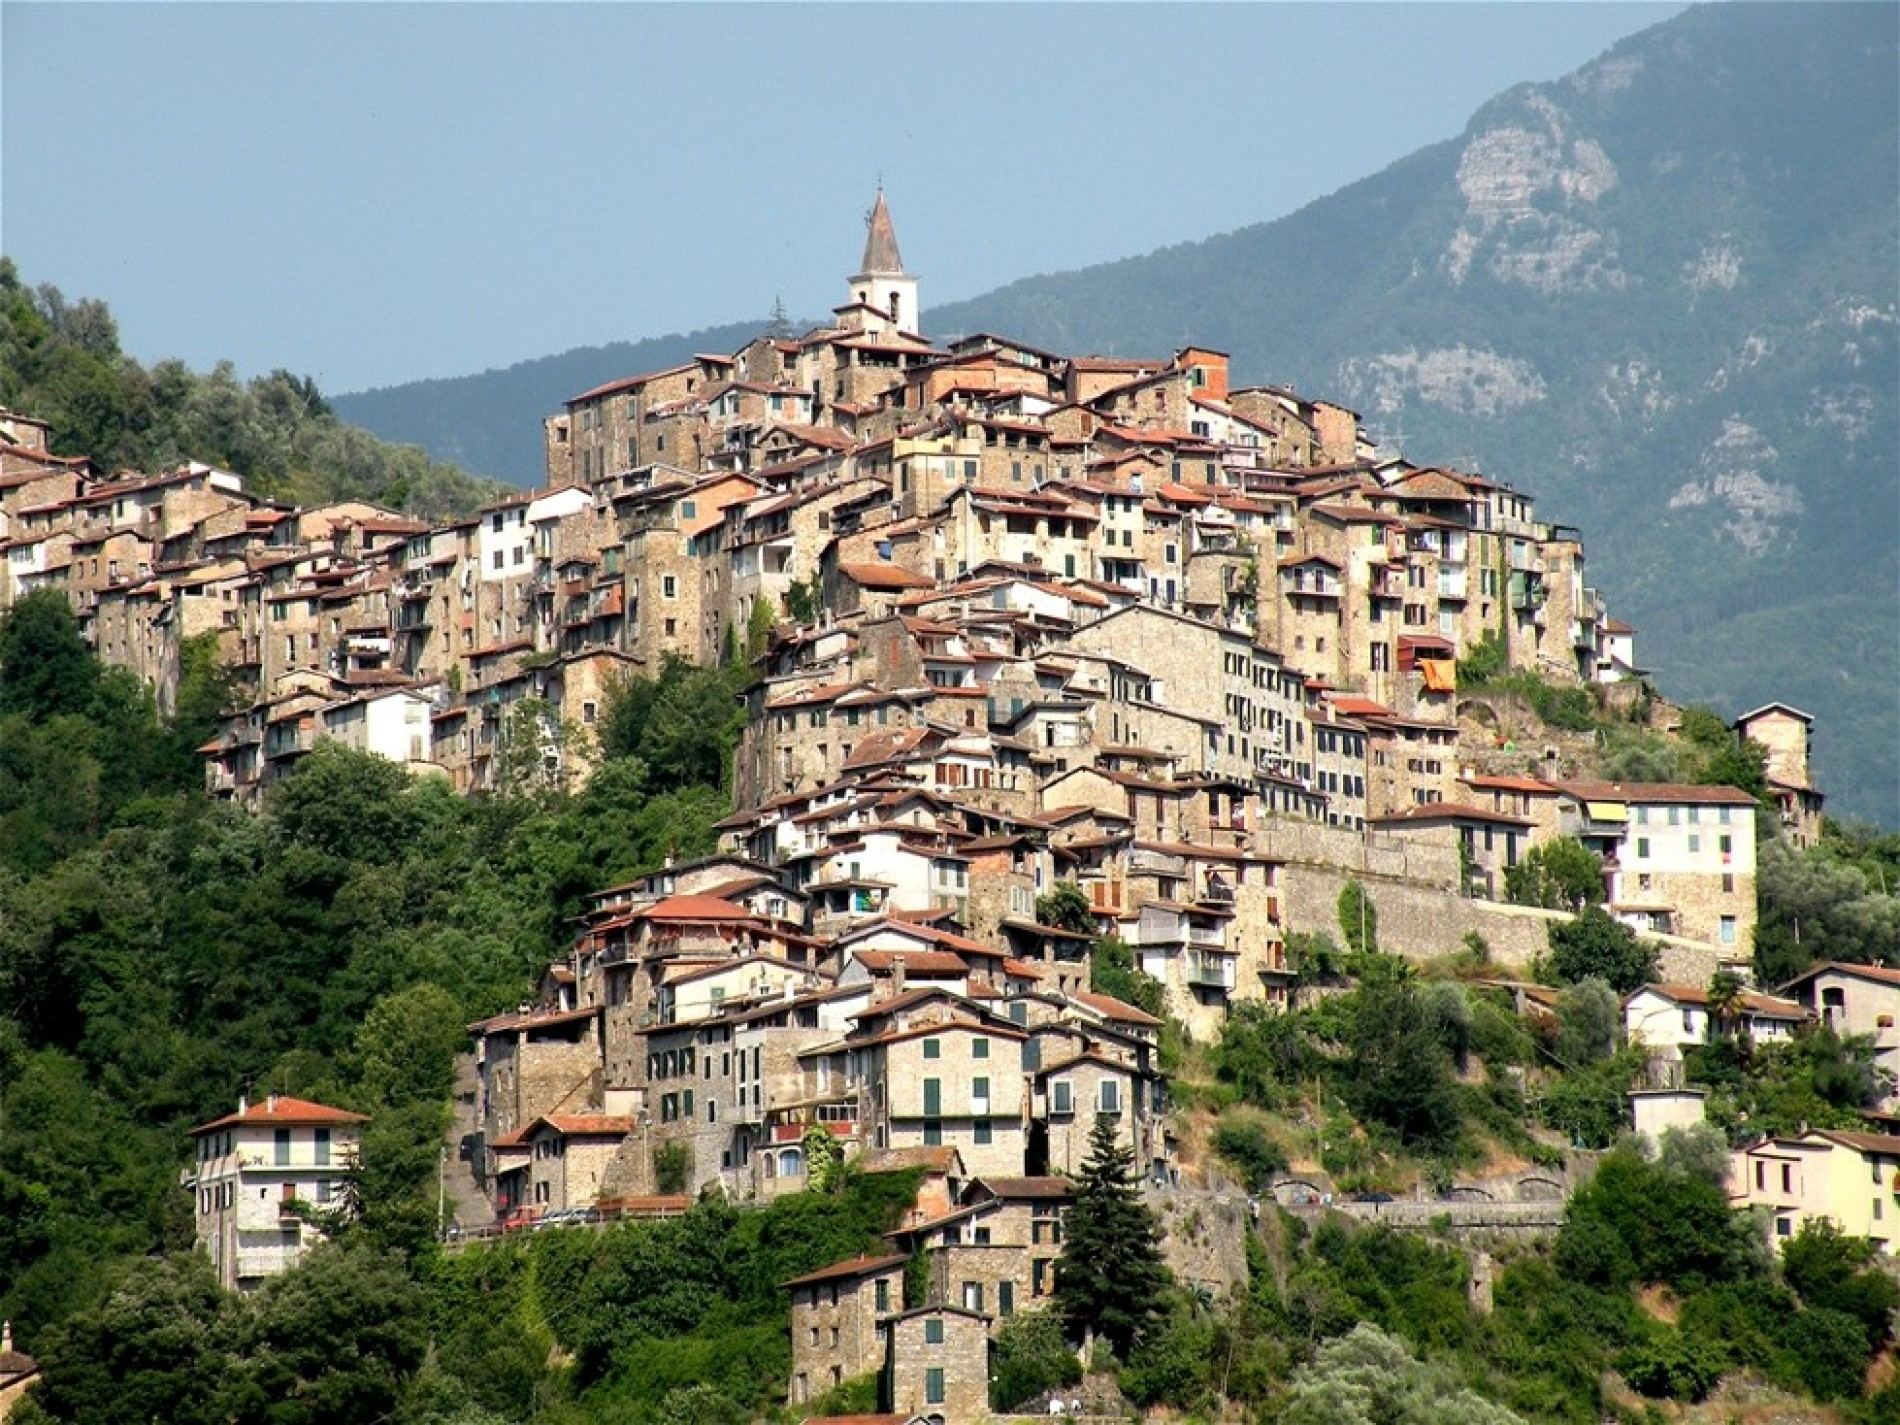 ITALY AND ITS HISTORIC TOWNS: A HERITAGE TO PROTECT